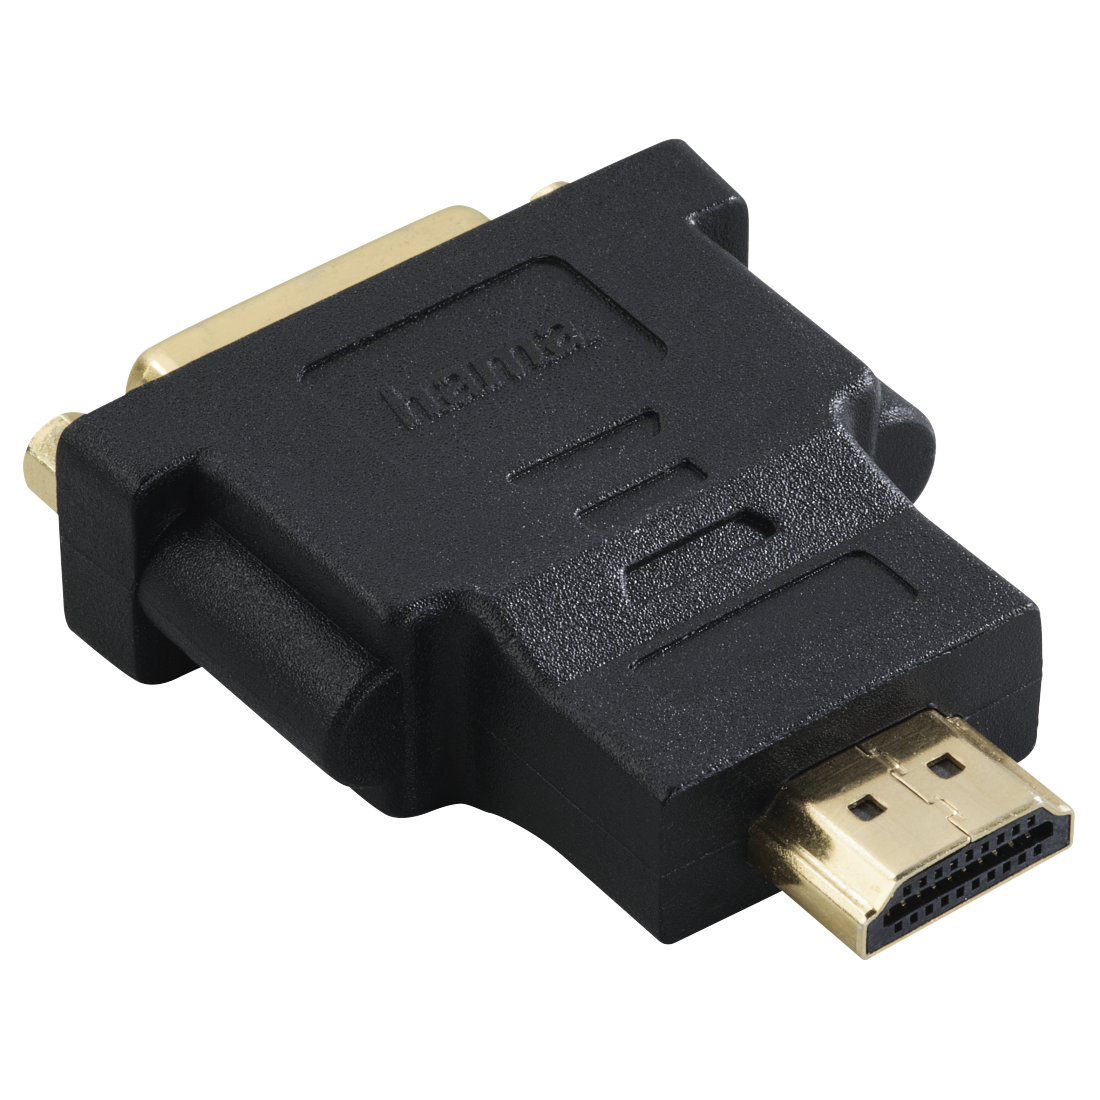 abx2 High-Res Image 2 - Hama, DVI HDMI™ Adapter, HDMI™ plug - DVI socket, gold-plated, shielded